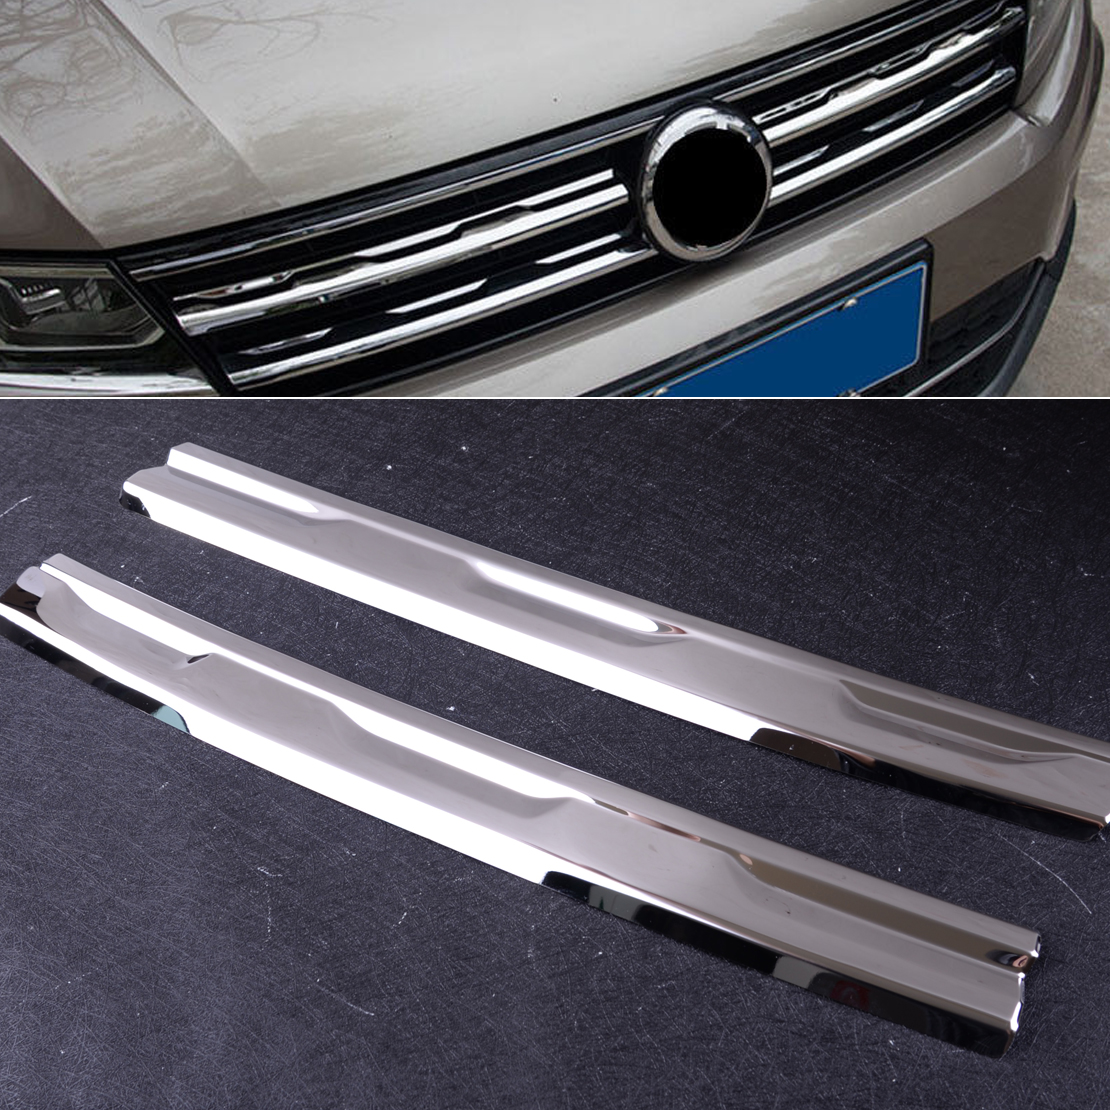 CITALL Stainless Steel Front Mesh Grill Grille Trim Molding Garnish Cover fit for Volkswagen <font><b>Tiguan</b></font> MK2 2016 2017 2018 <font><b>2019</b></font> image